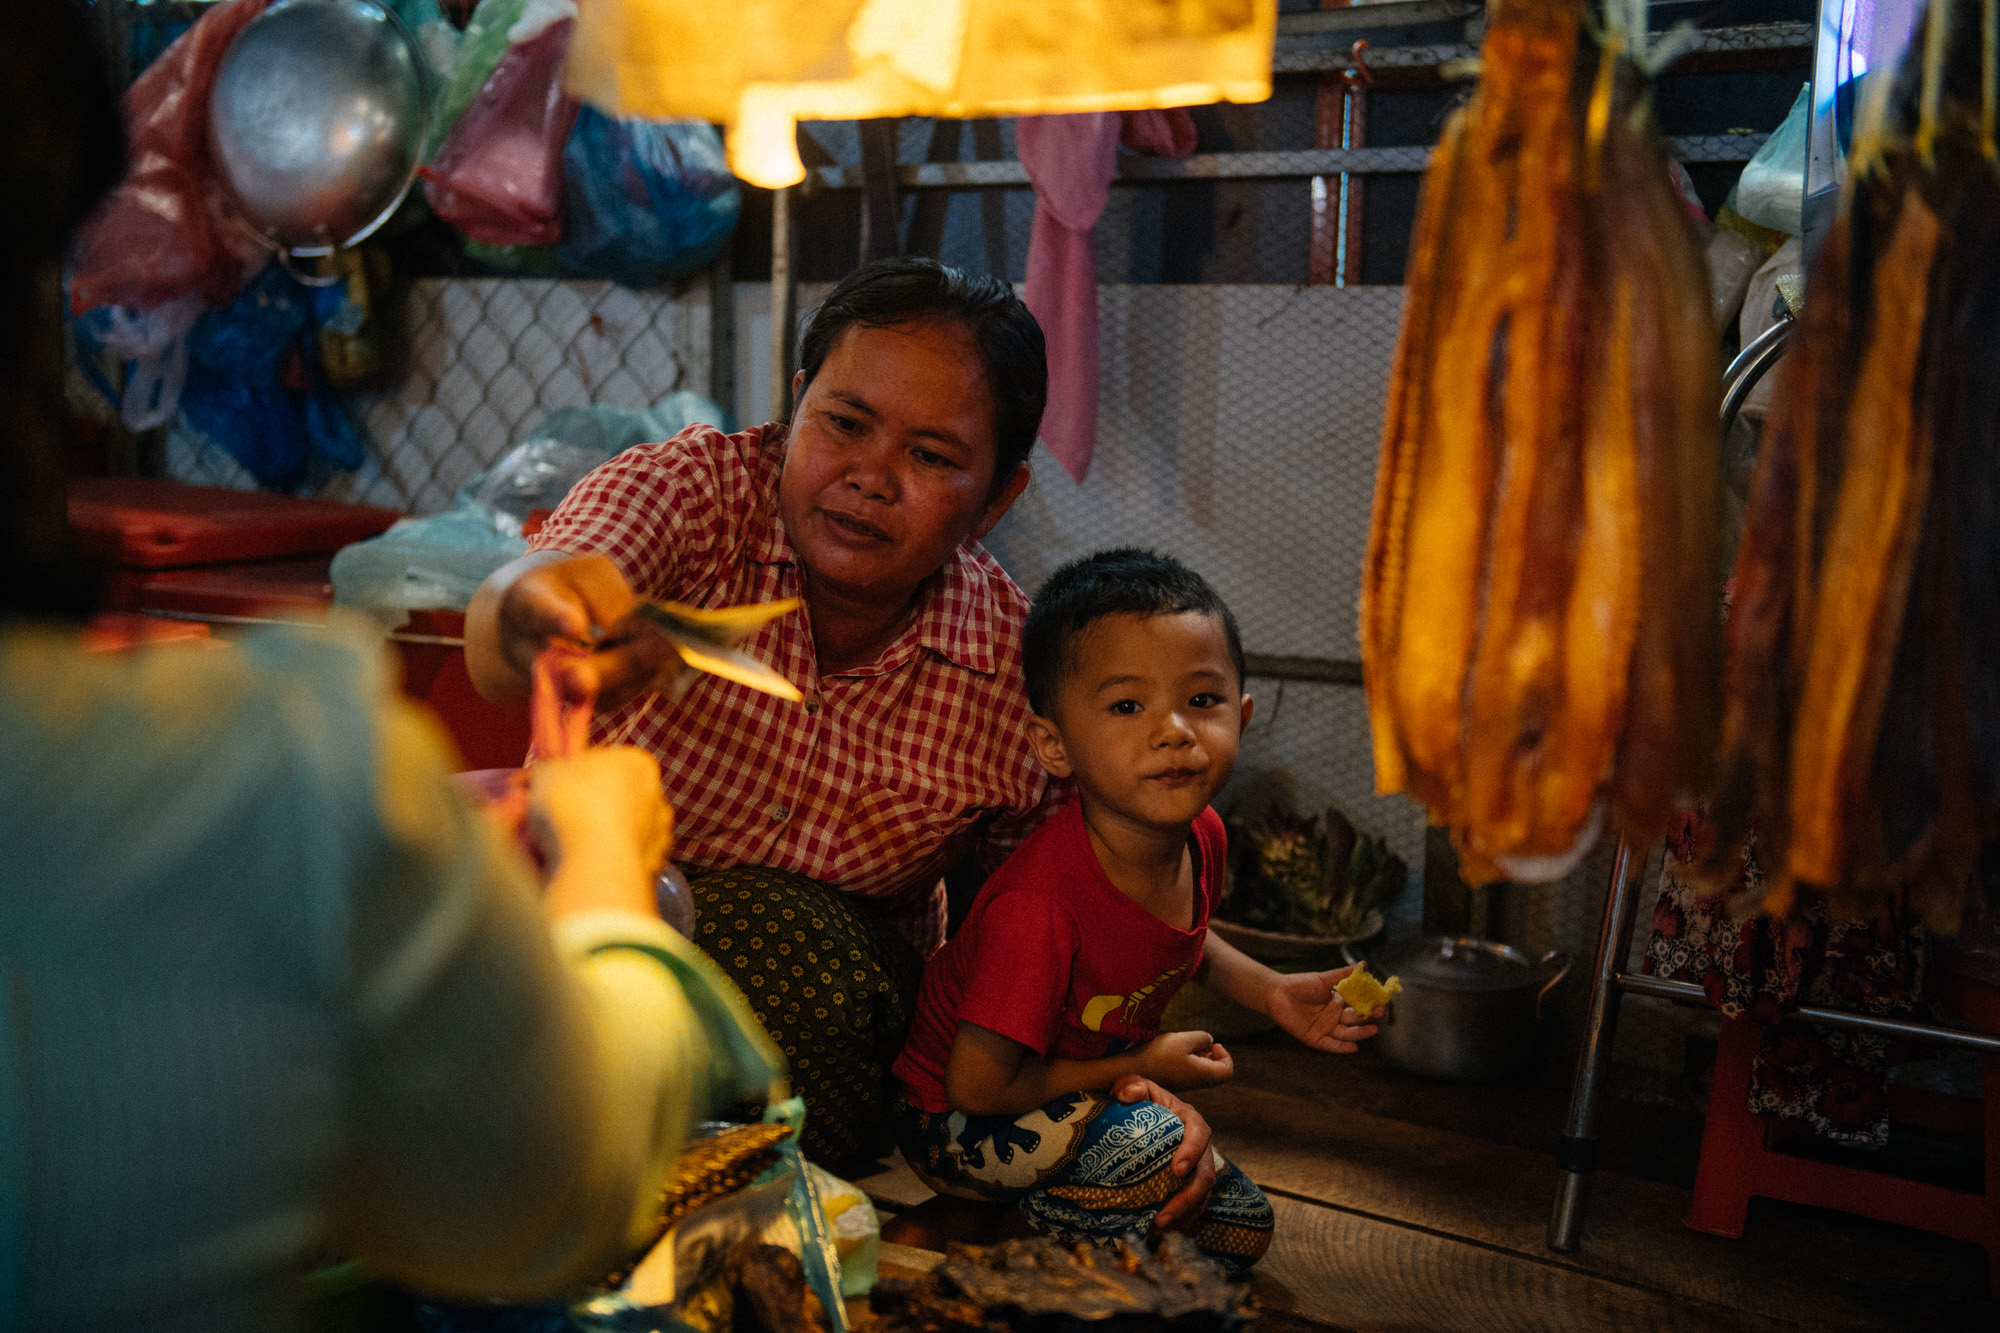 It is not uncommon to see children helping their parents in the market or just playing and running around the stalls until the day ends. As it happens in many countries in Asia, working hours are extremely long in Cambodia for those who run a small business and parents have no option but to bring children to their workplace.